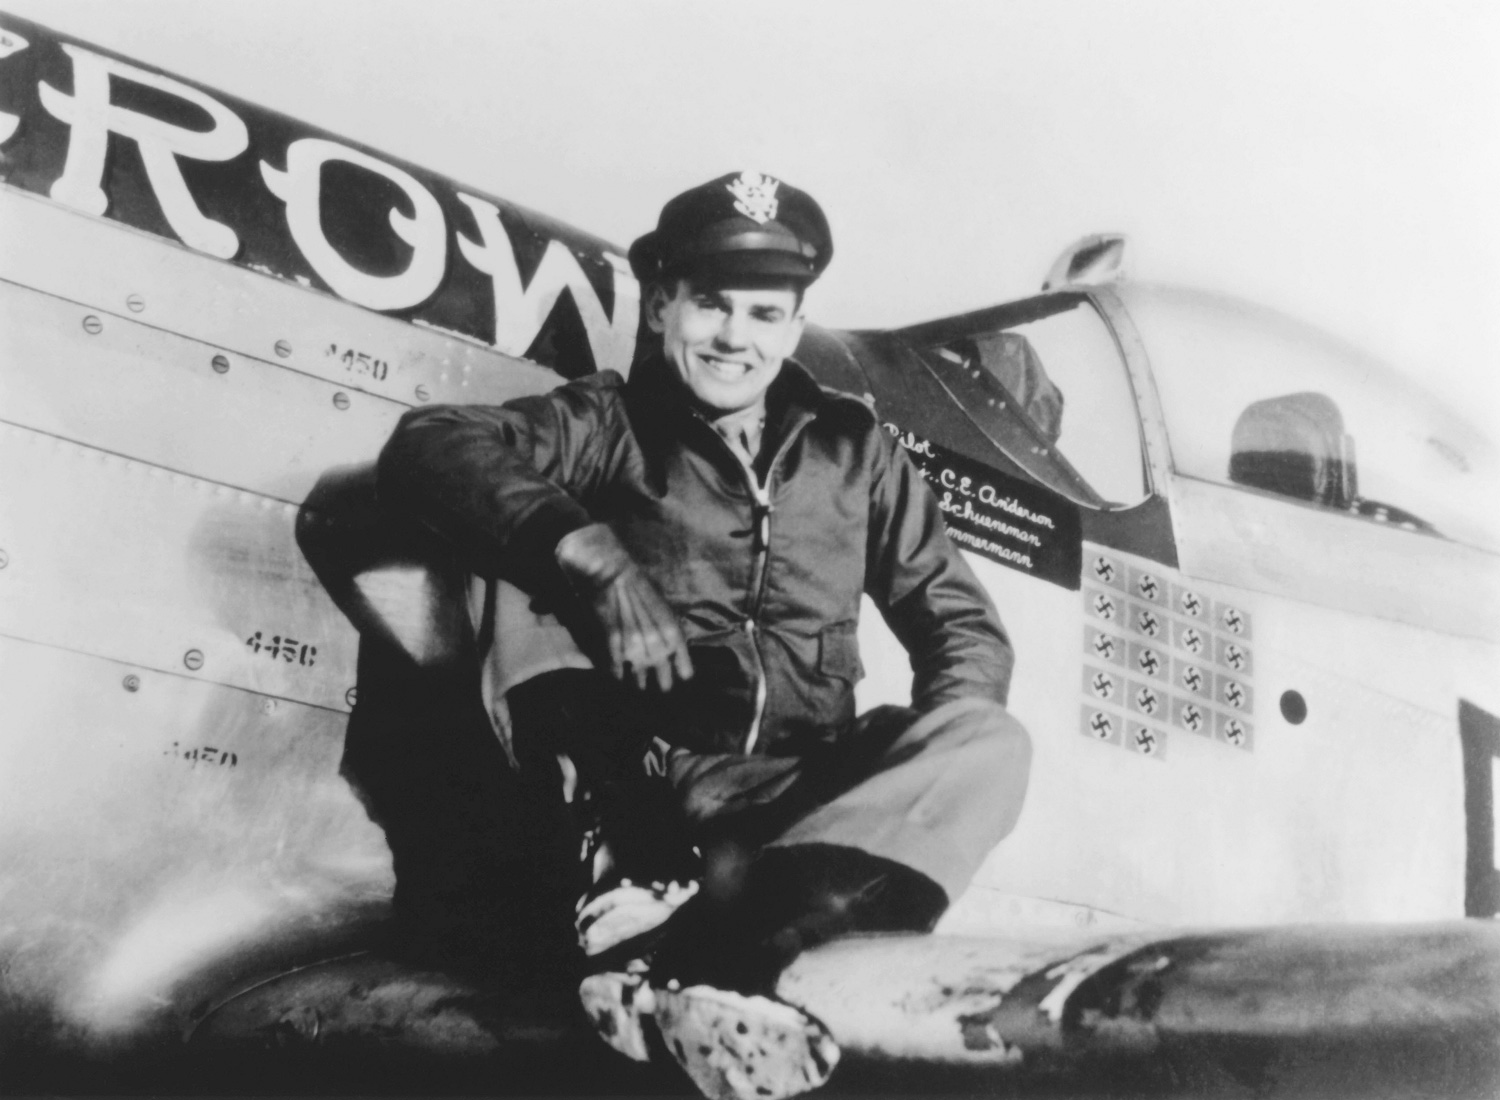 Young Bud Anderson P-51 Mustang